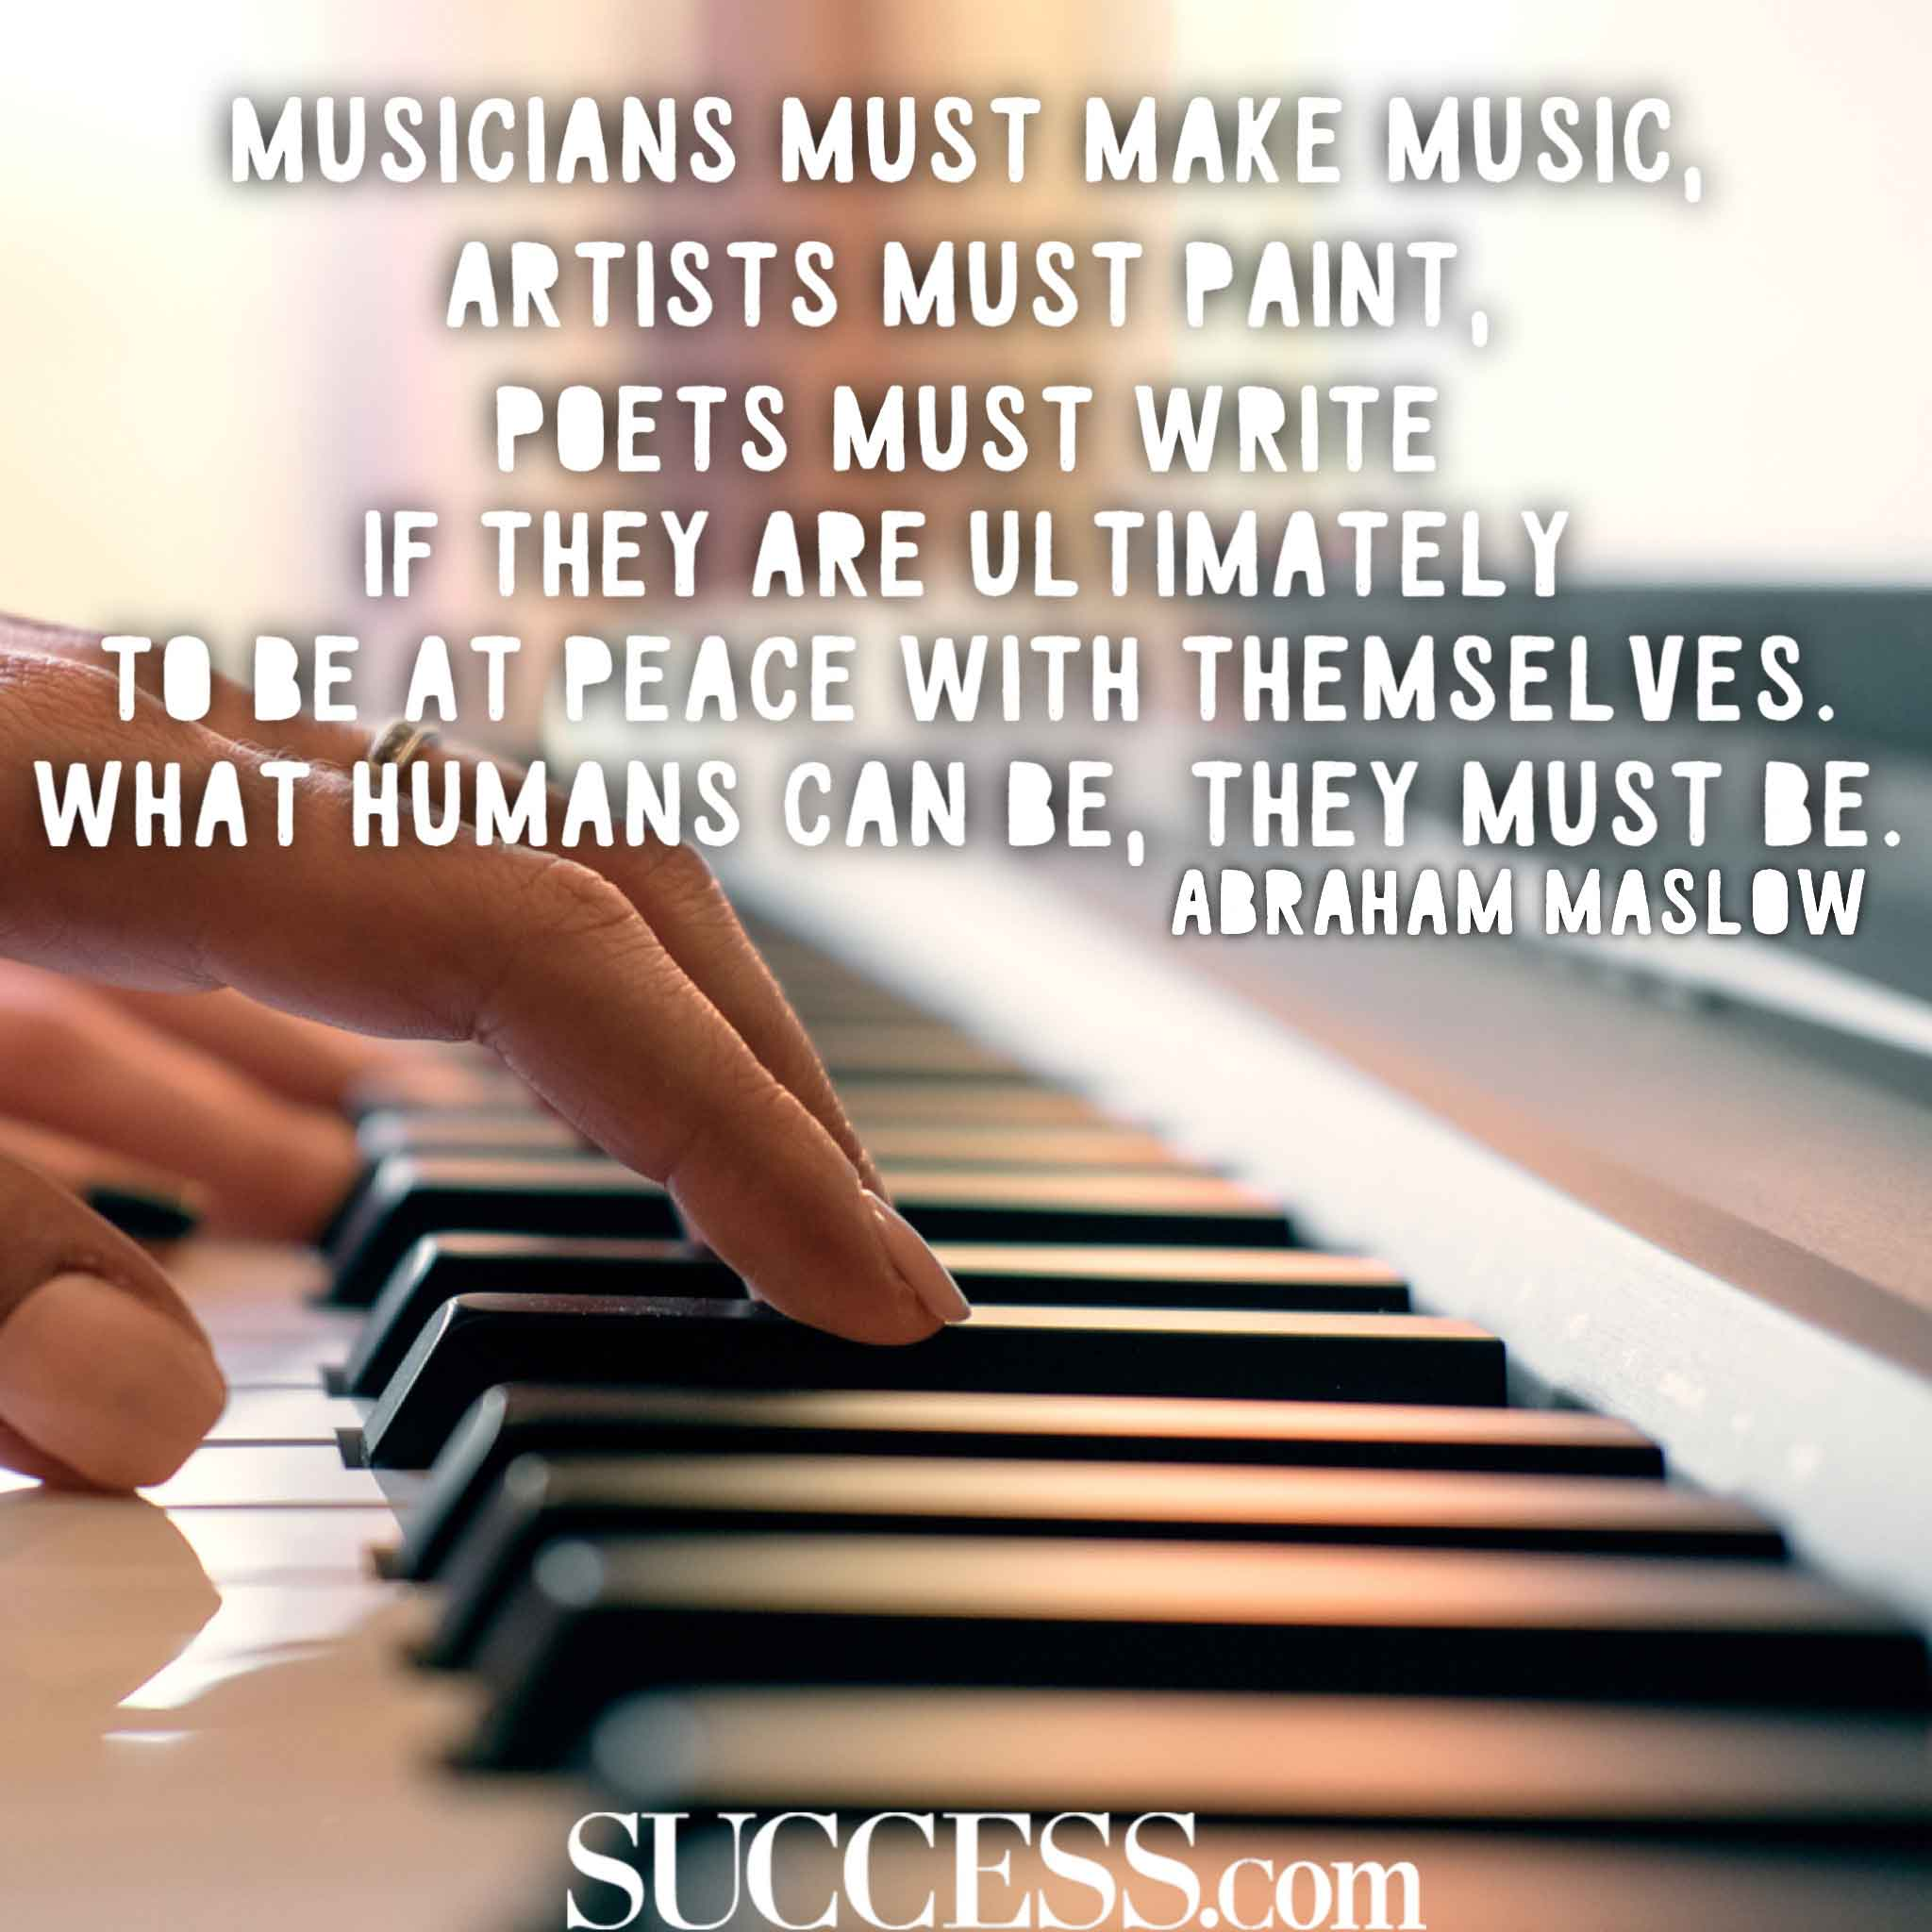 Quotes On The Importance Of Music: 17 Inspiring Quotes To Help You Live A Life Of Purpose